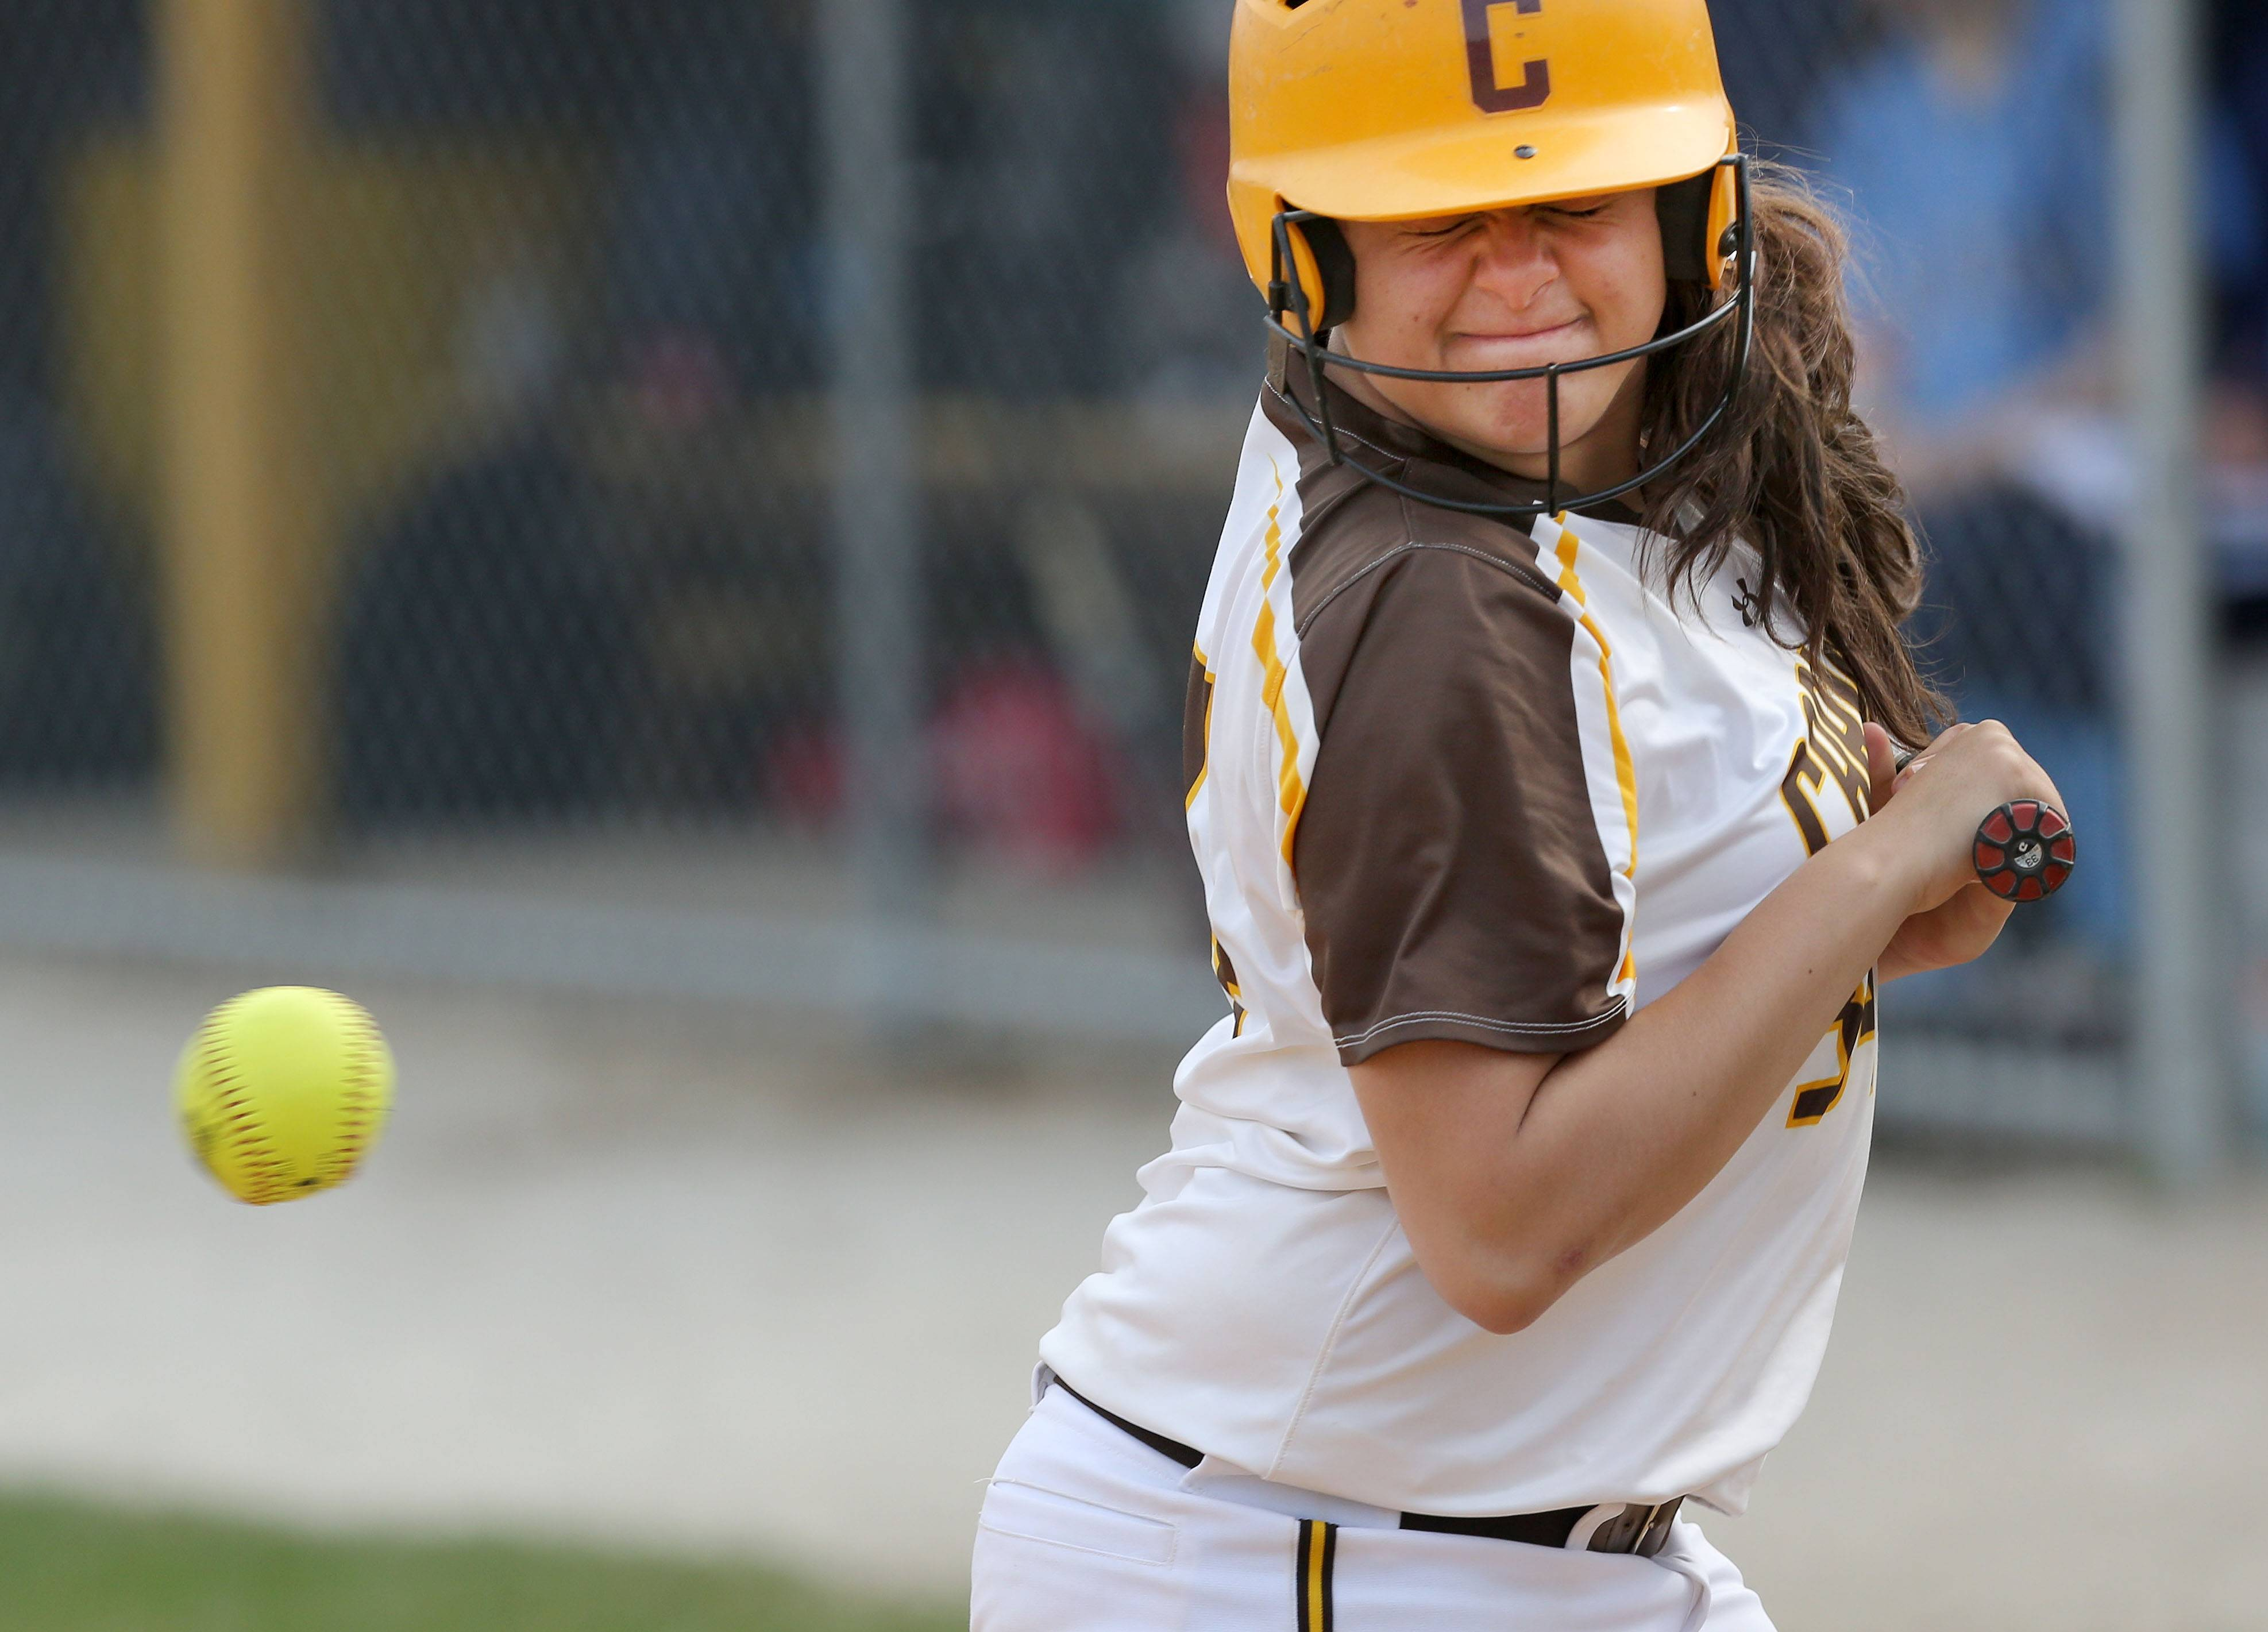 Carmel Catholic's Dani DeLozier gets hit by a pitch against Nazareth on Wednesday at Carmel.